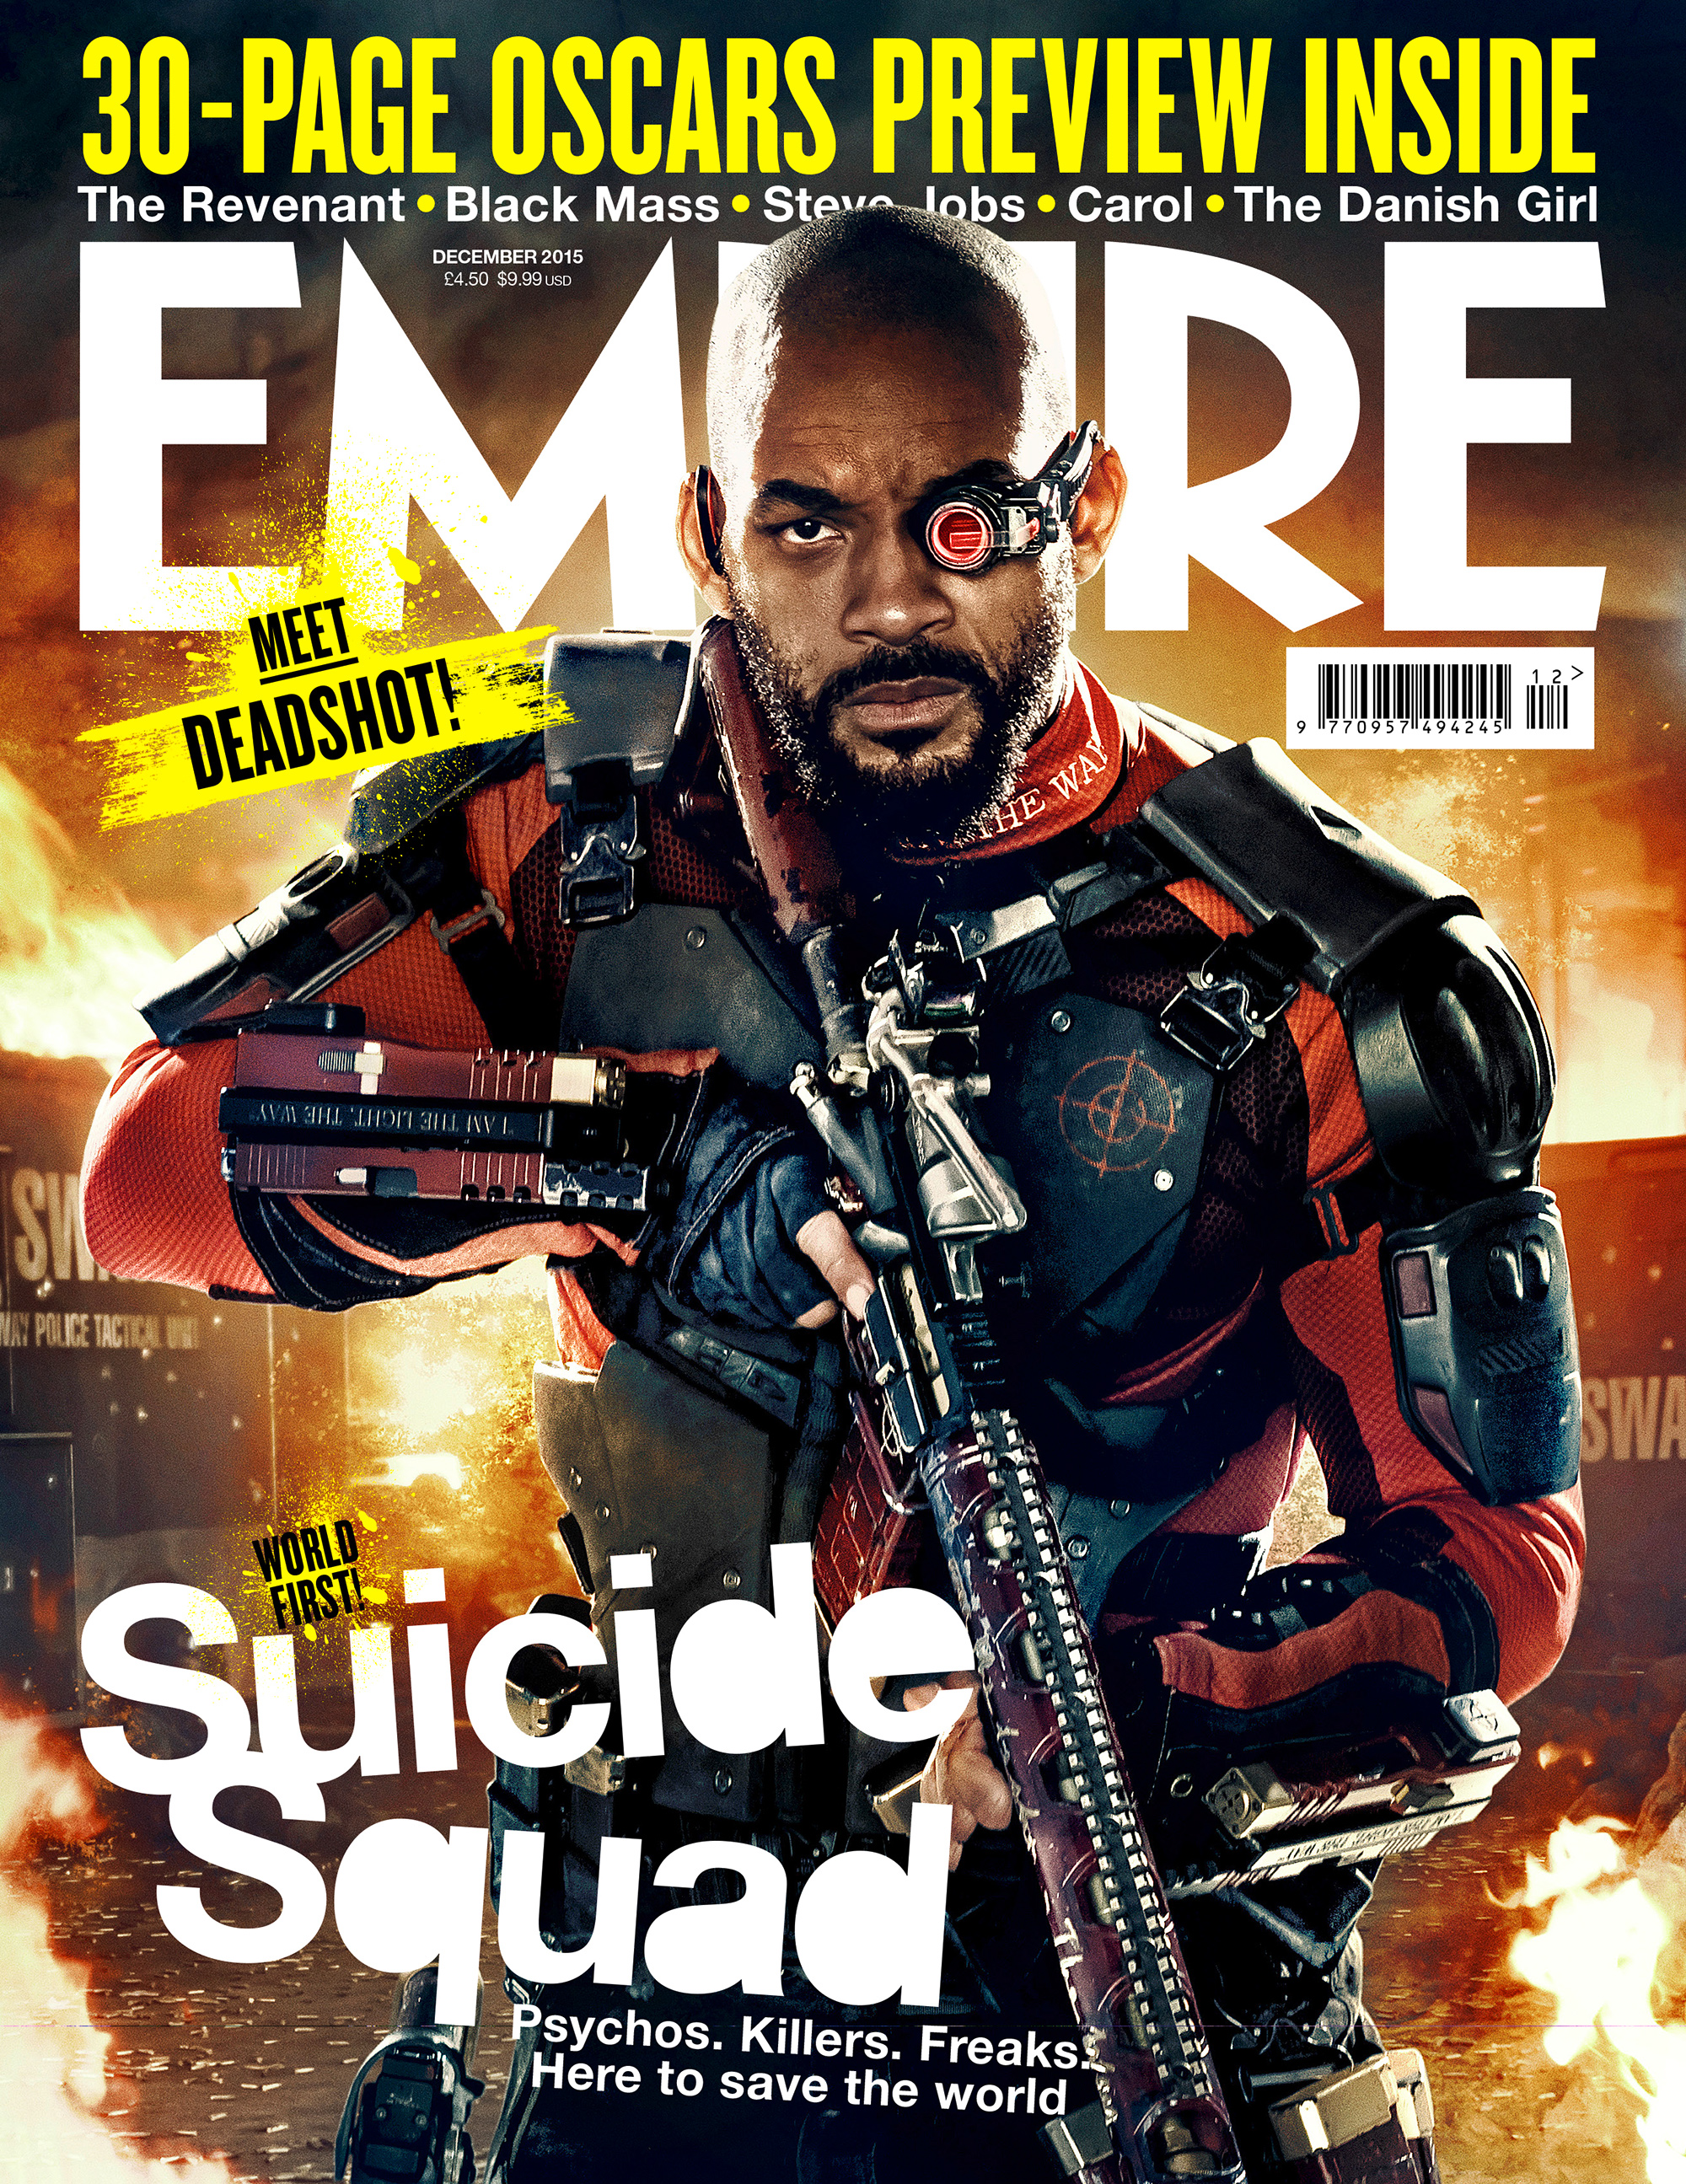 Suicide Squad's Empire Magazine Cover featuring Will Smith as Deadshot - December 2015